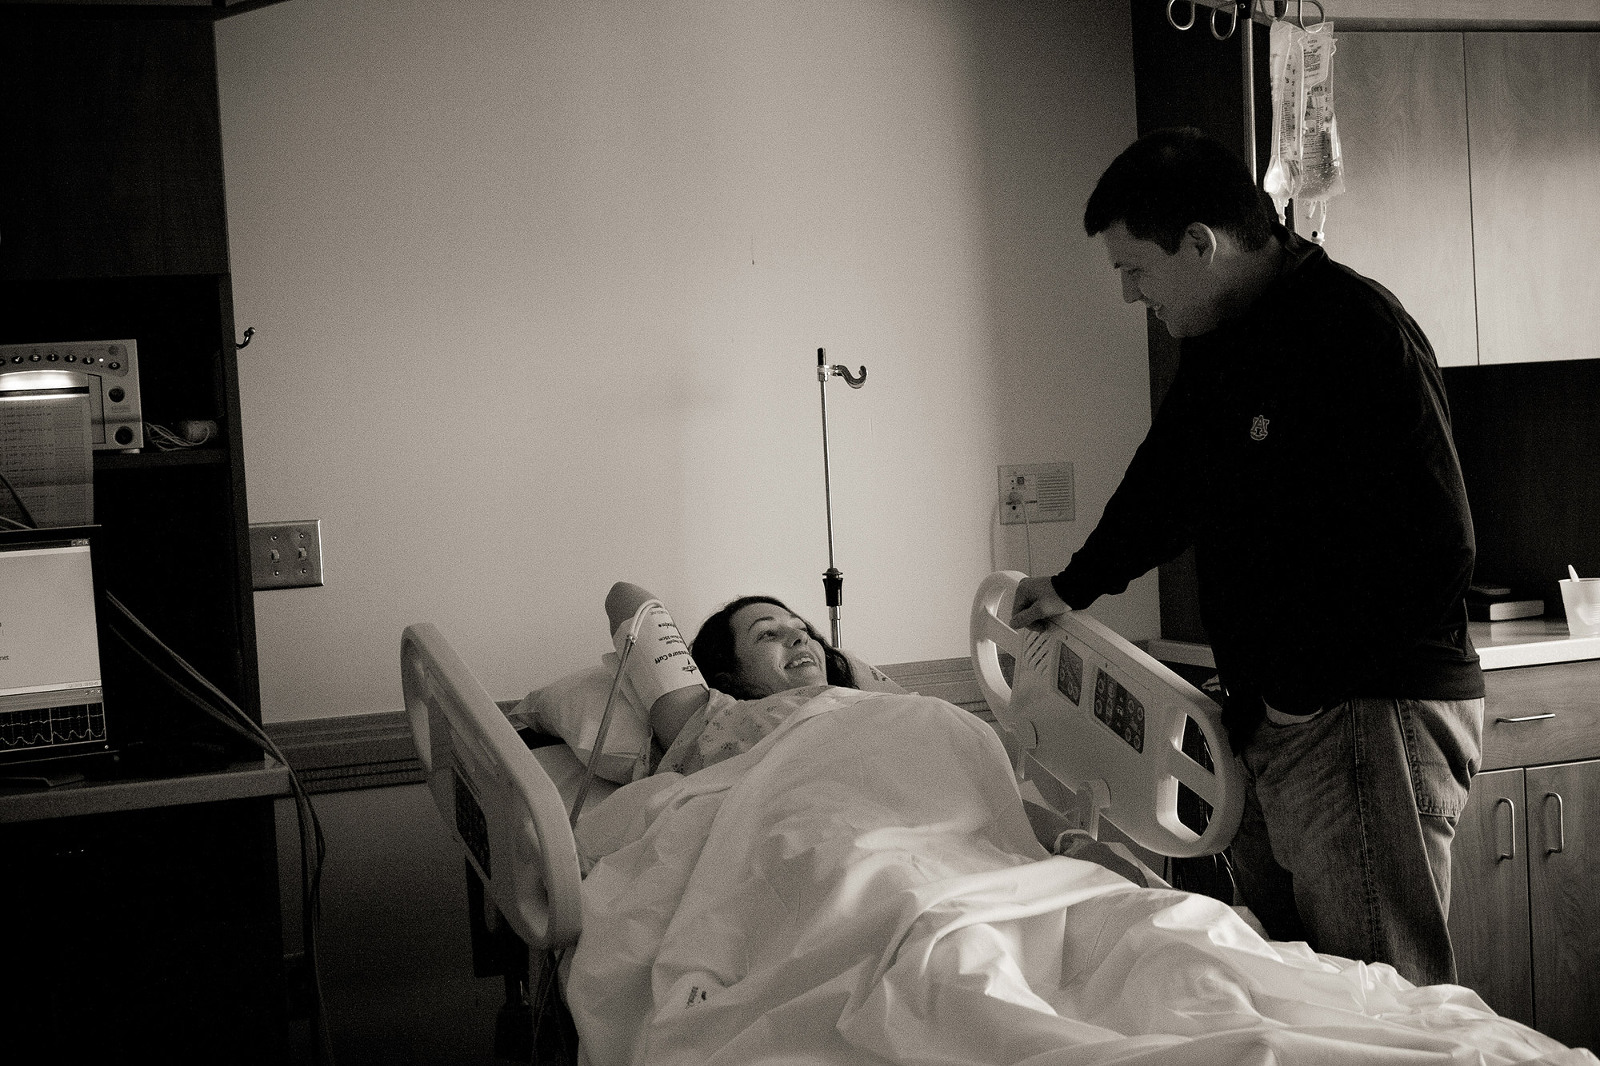 dad talks to mom while she labors in hospital bed